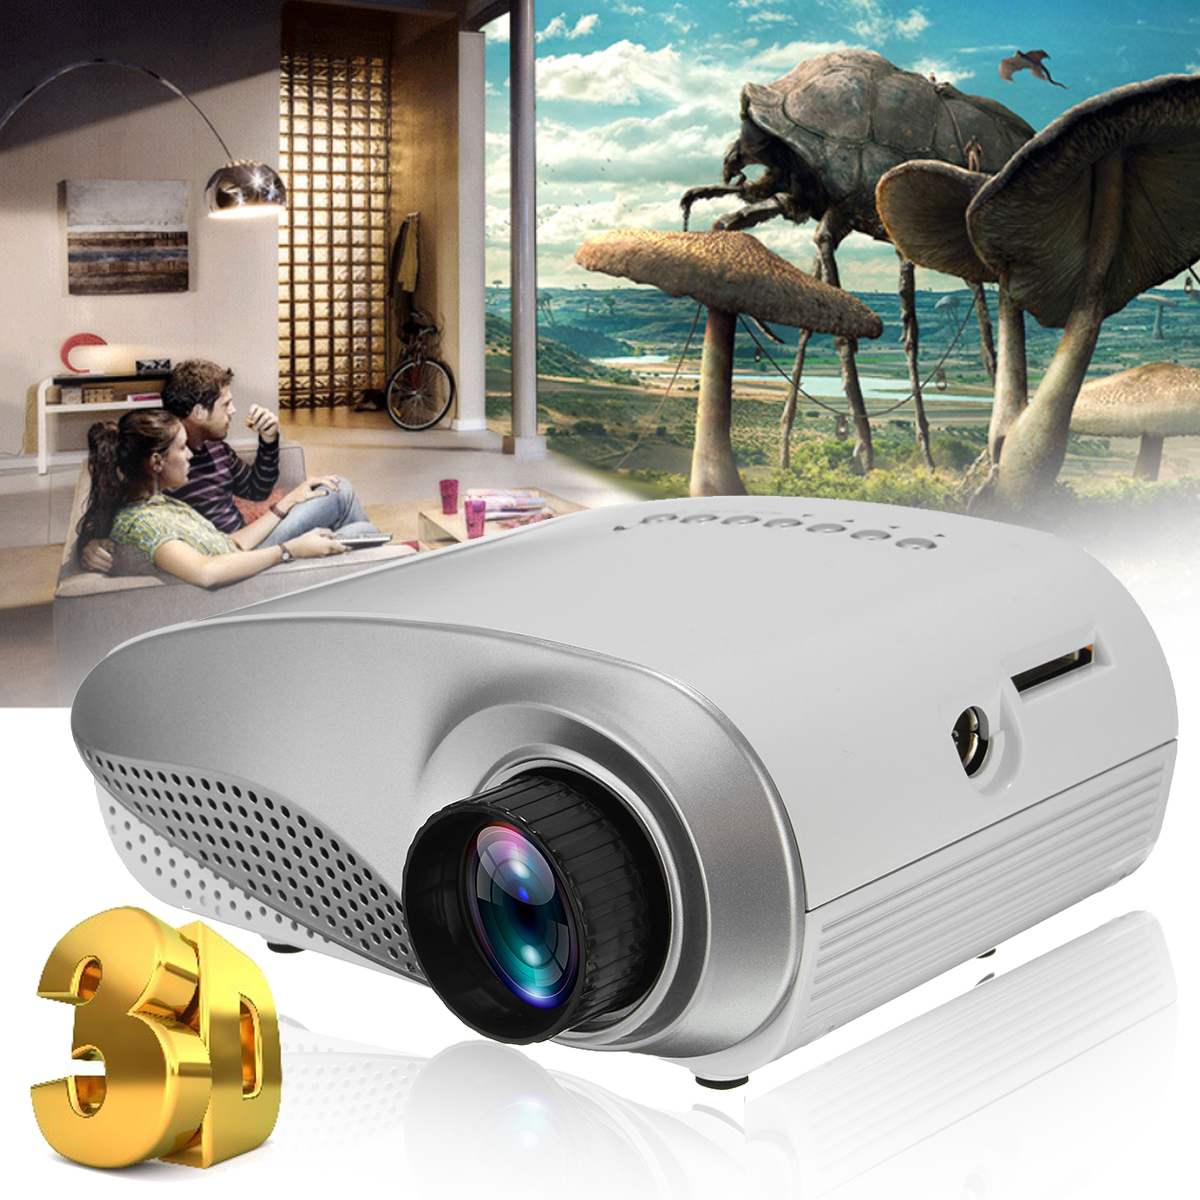 Home Mini Cinema Portable 1080P 3D HD LED Projector Multimedia Home Theater USB VGA HDMI TV Home Theatre System nixon часы nixon a466 008 коллекция ranger